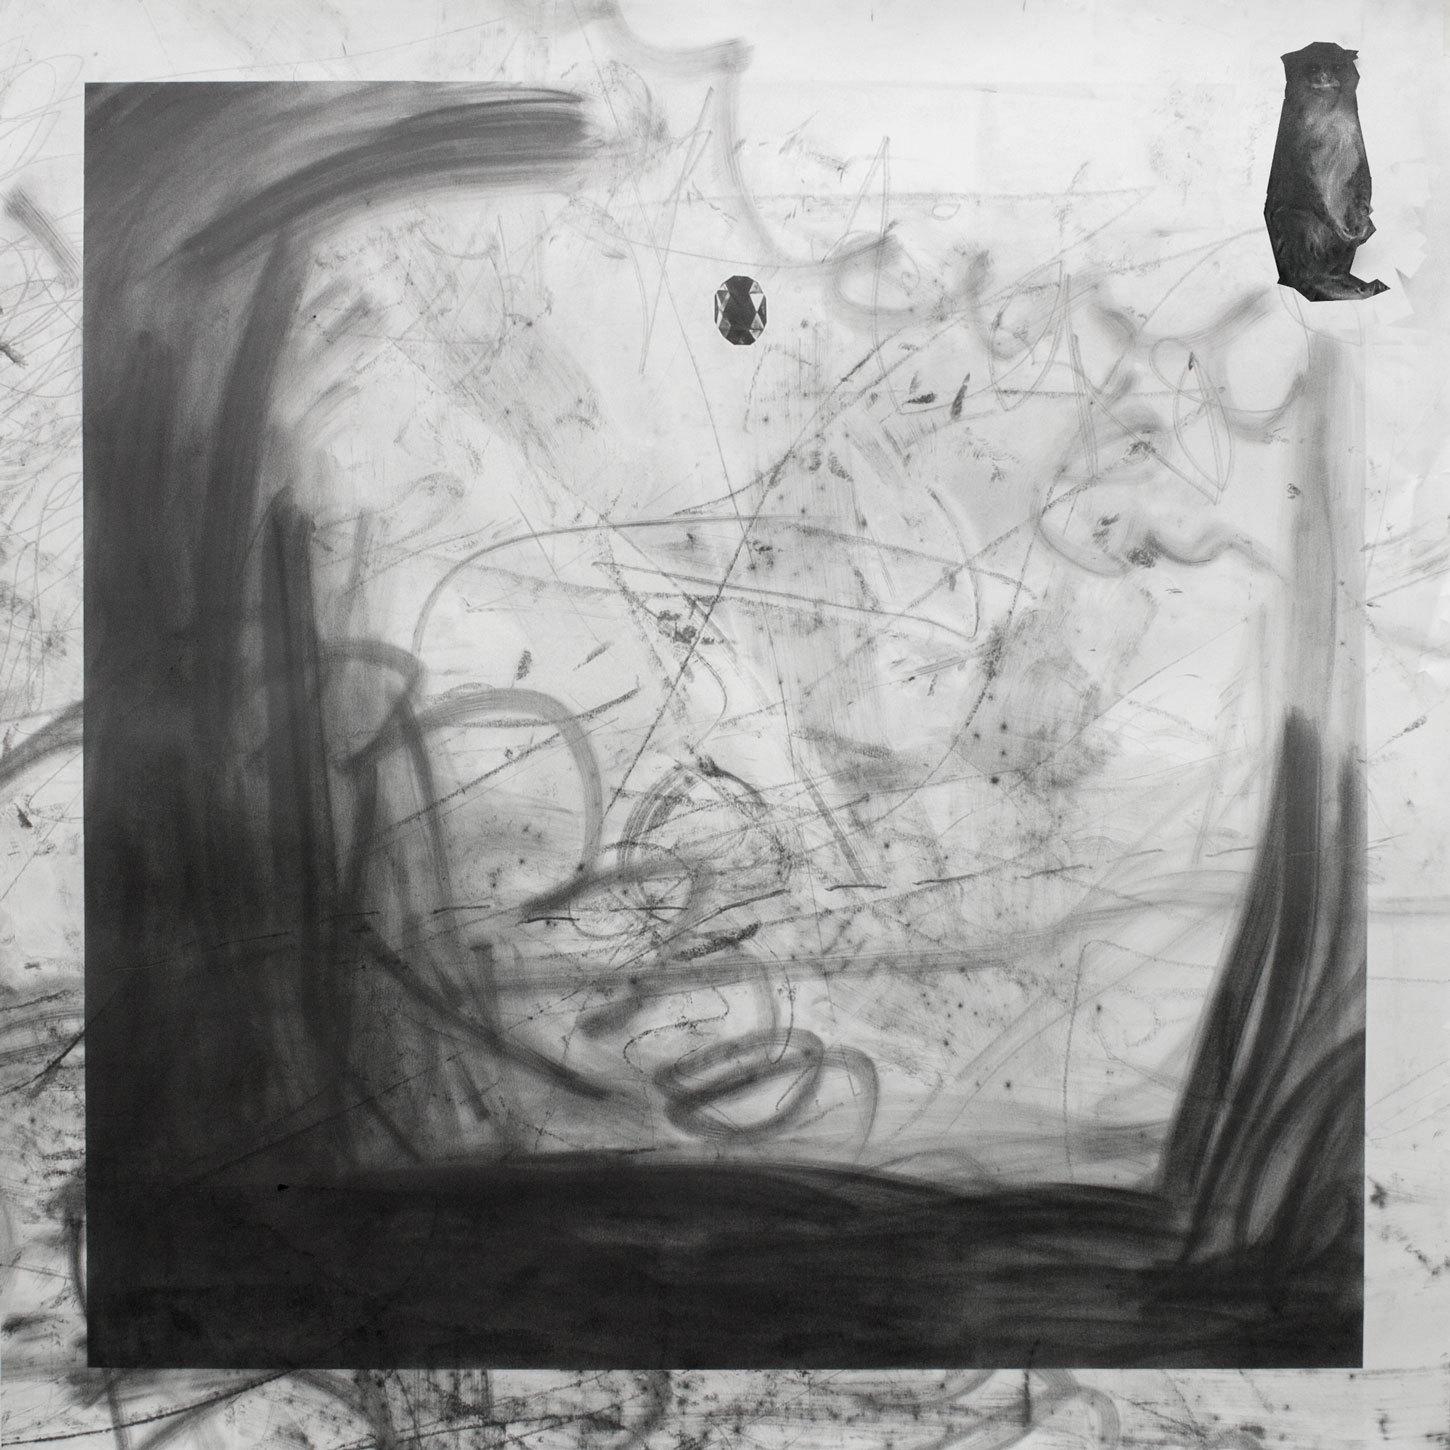 Caliban's Gem, Graphite & Pencil on Paper, 100cm x 100cm, 2015